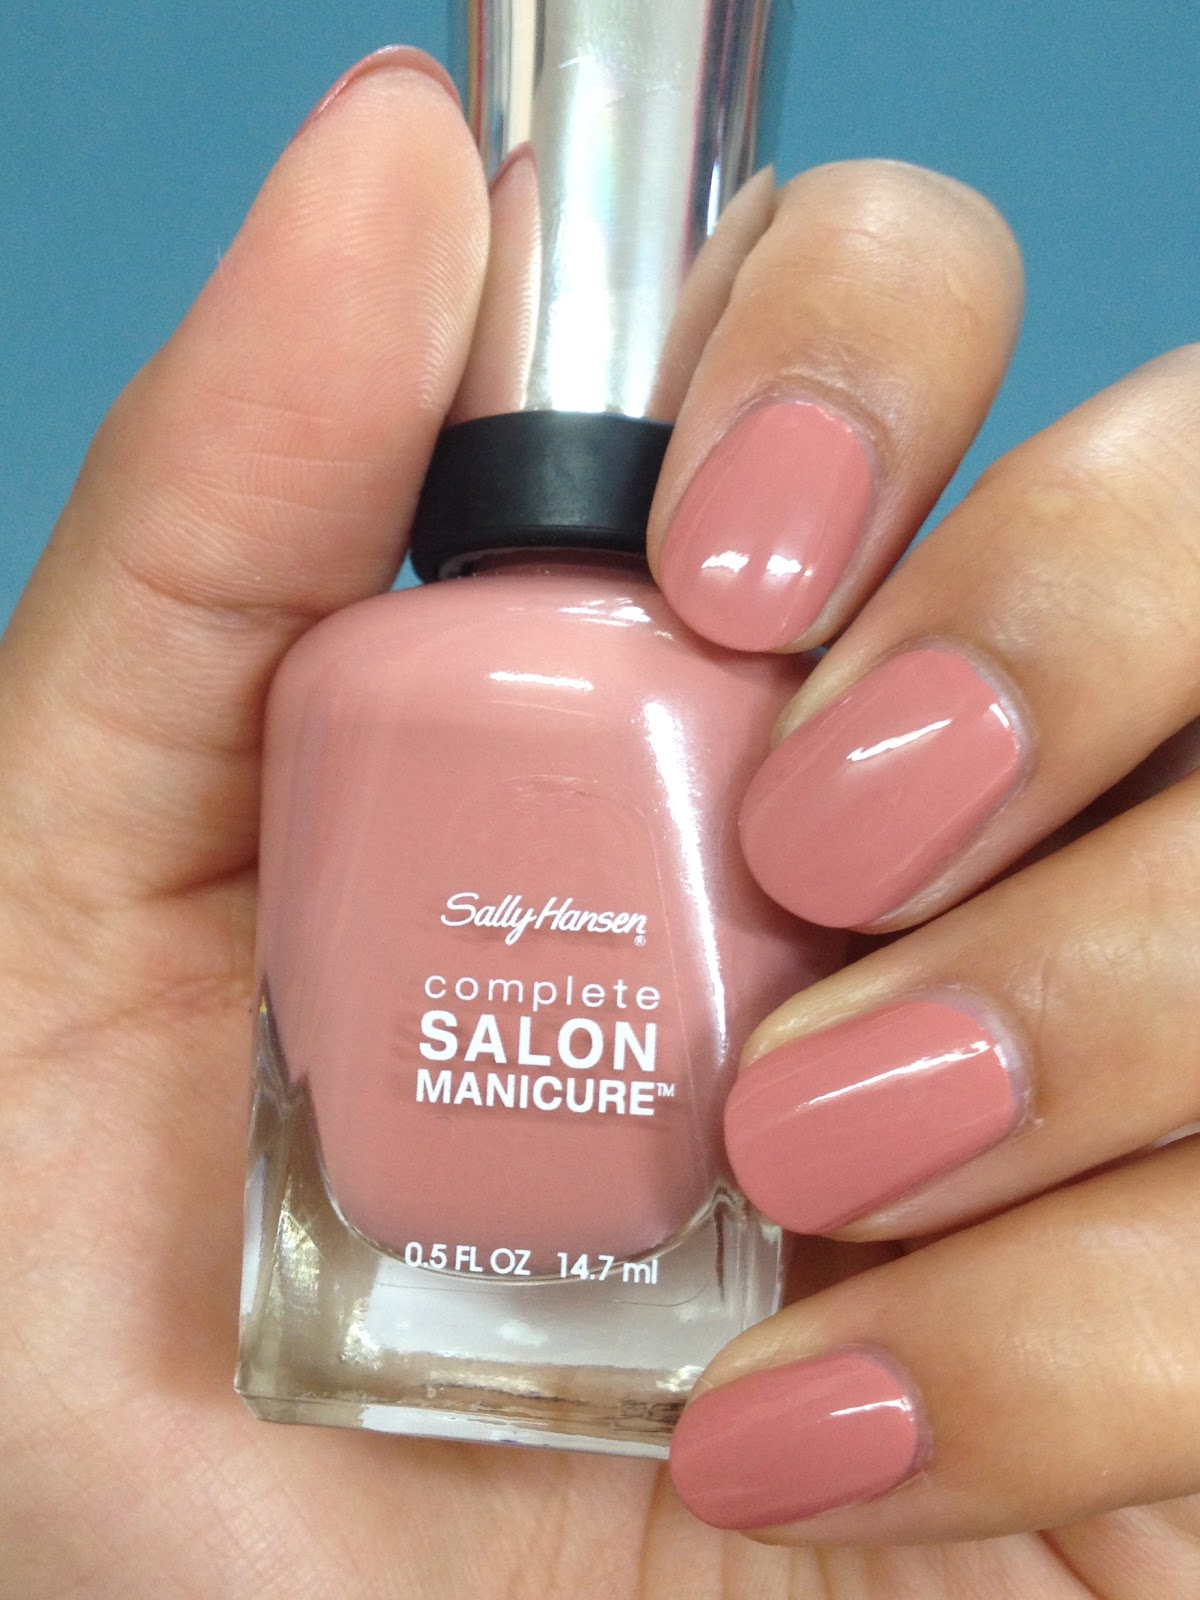 The Bridal Hairstylist Sally Hanson Complete Salon Manicure Nail Polish Swatches